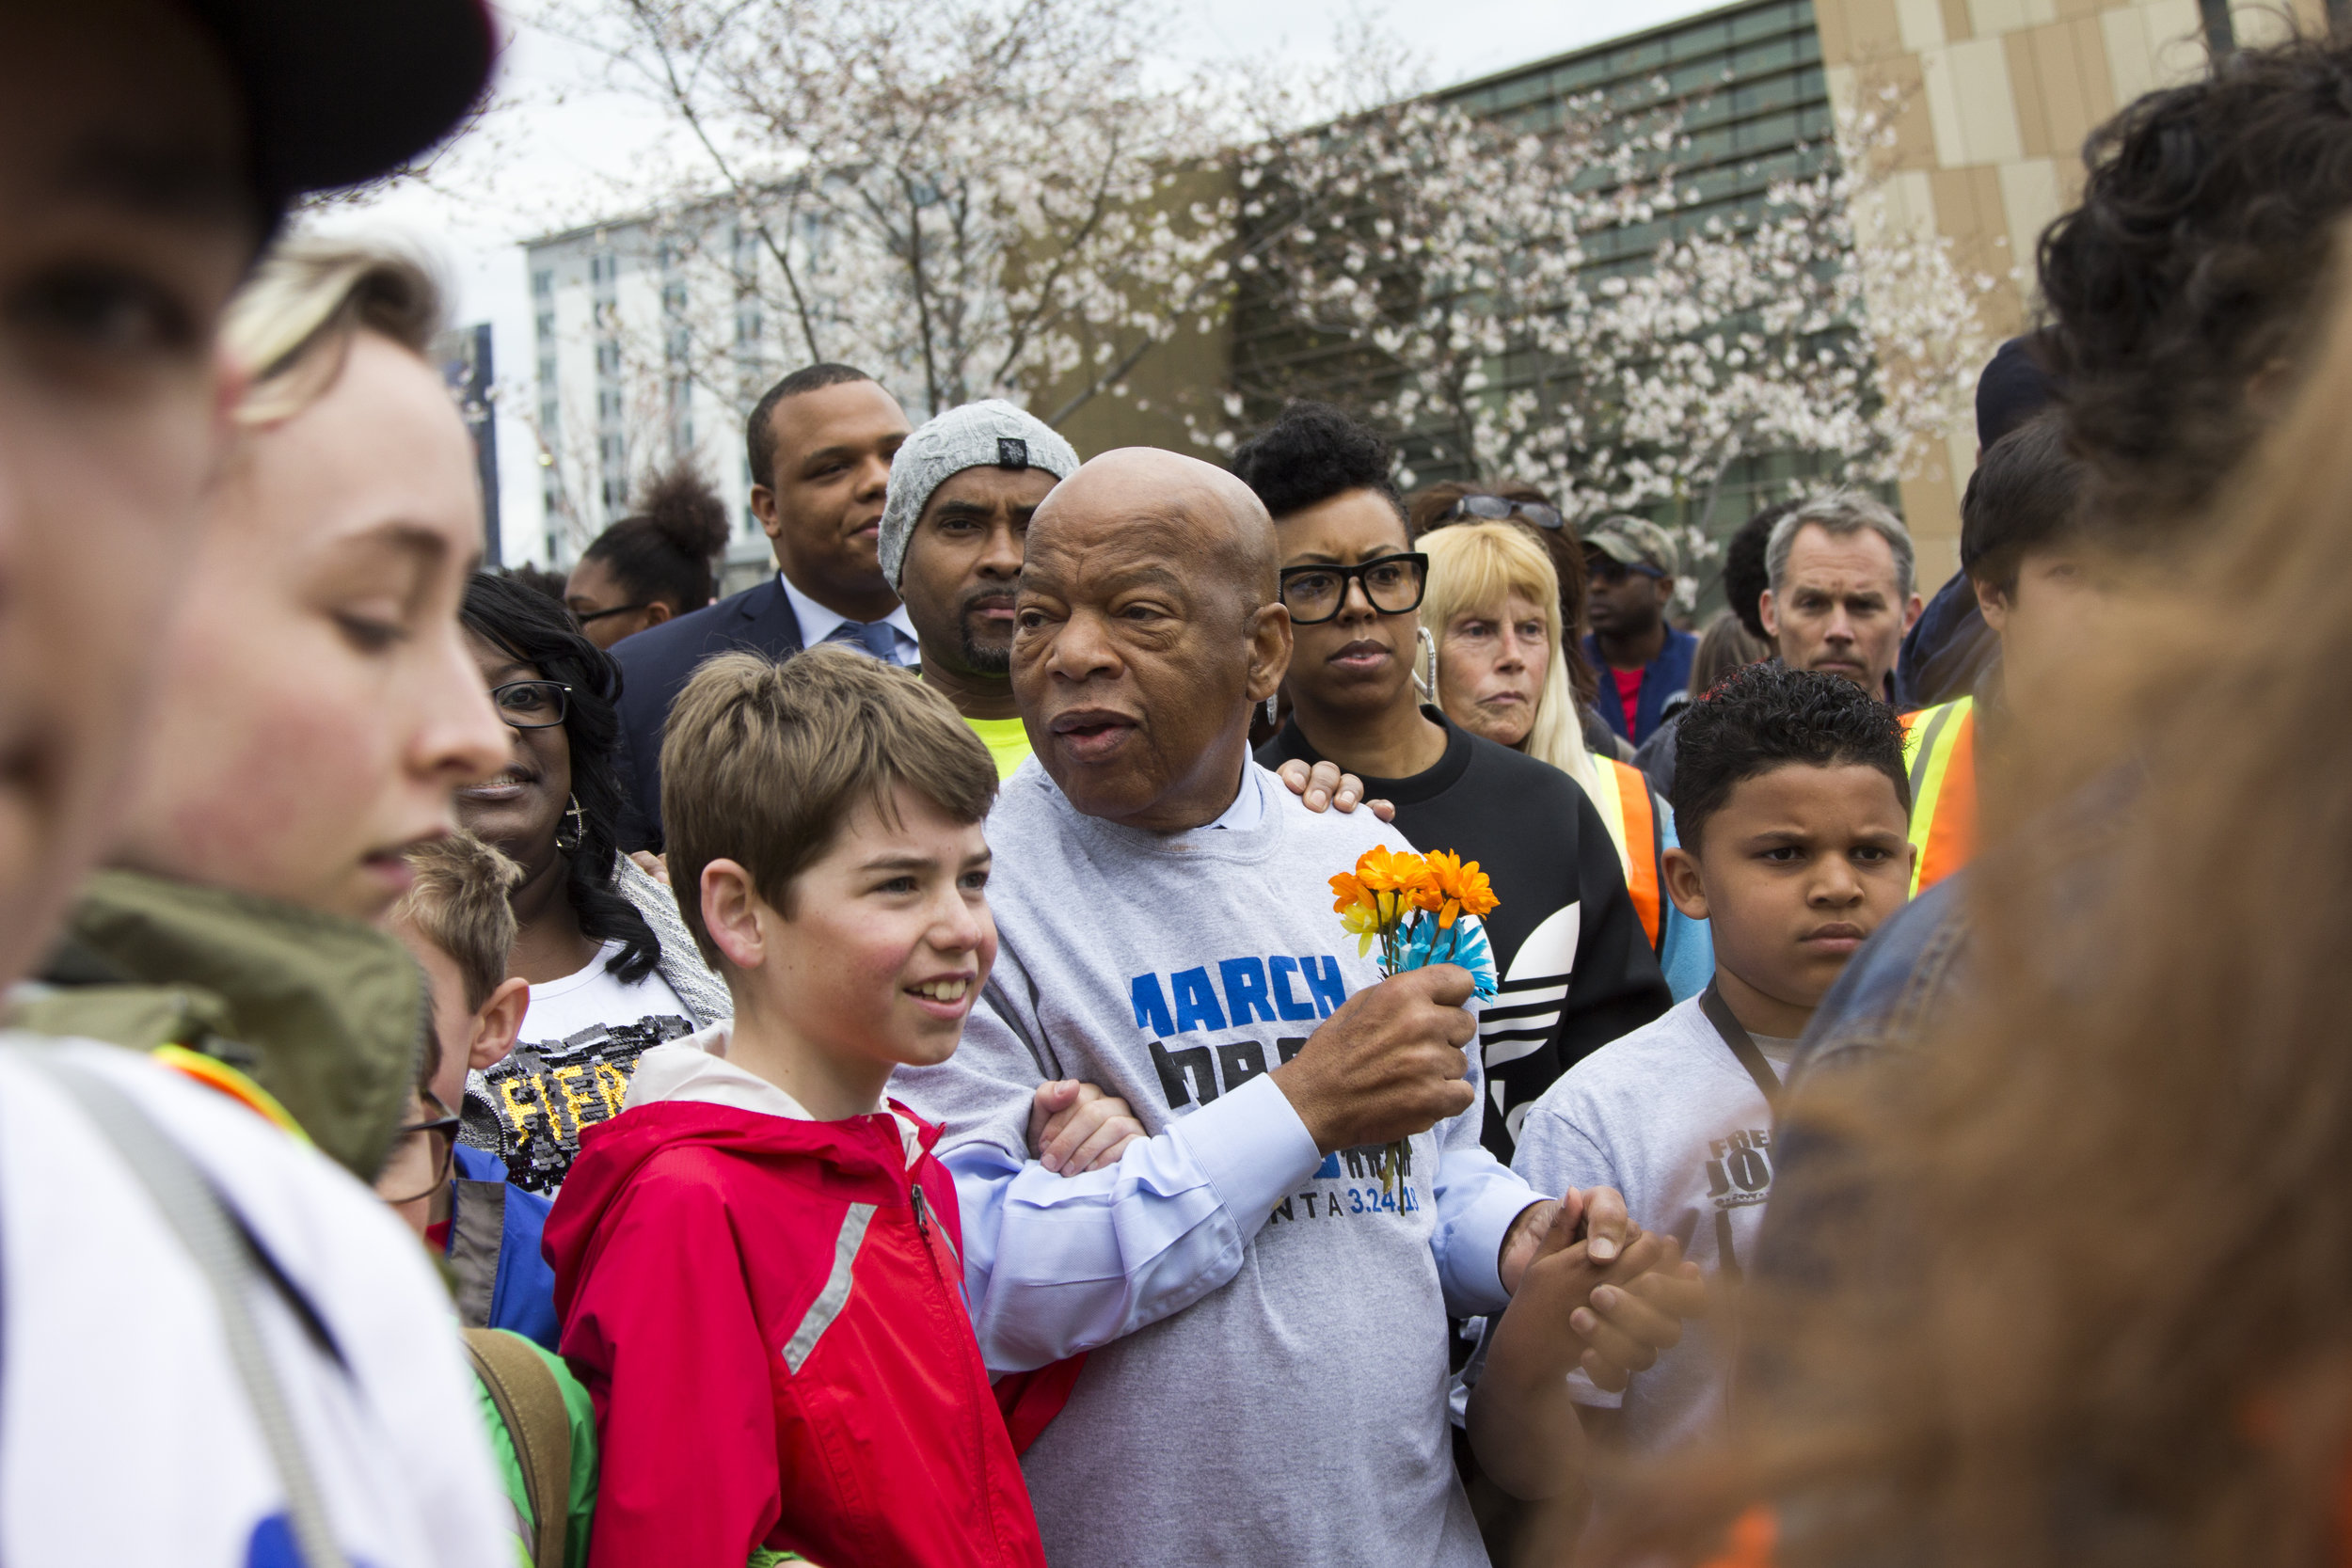 Congressman John Lewis marches with students during the March for Our Lives event in Atlanta, Georgia, on Saturday, March 24, 2018. The march, started and organized by students and activists at Marjory Stoneman Douglas High School in Parkland, Florida, brought a crowd of 30,000 to the streets of Atlanta to protest the lack of action taken to prevent gun violence, especially in schools.